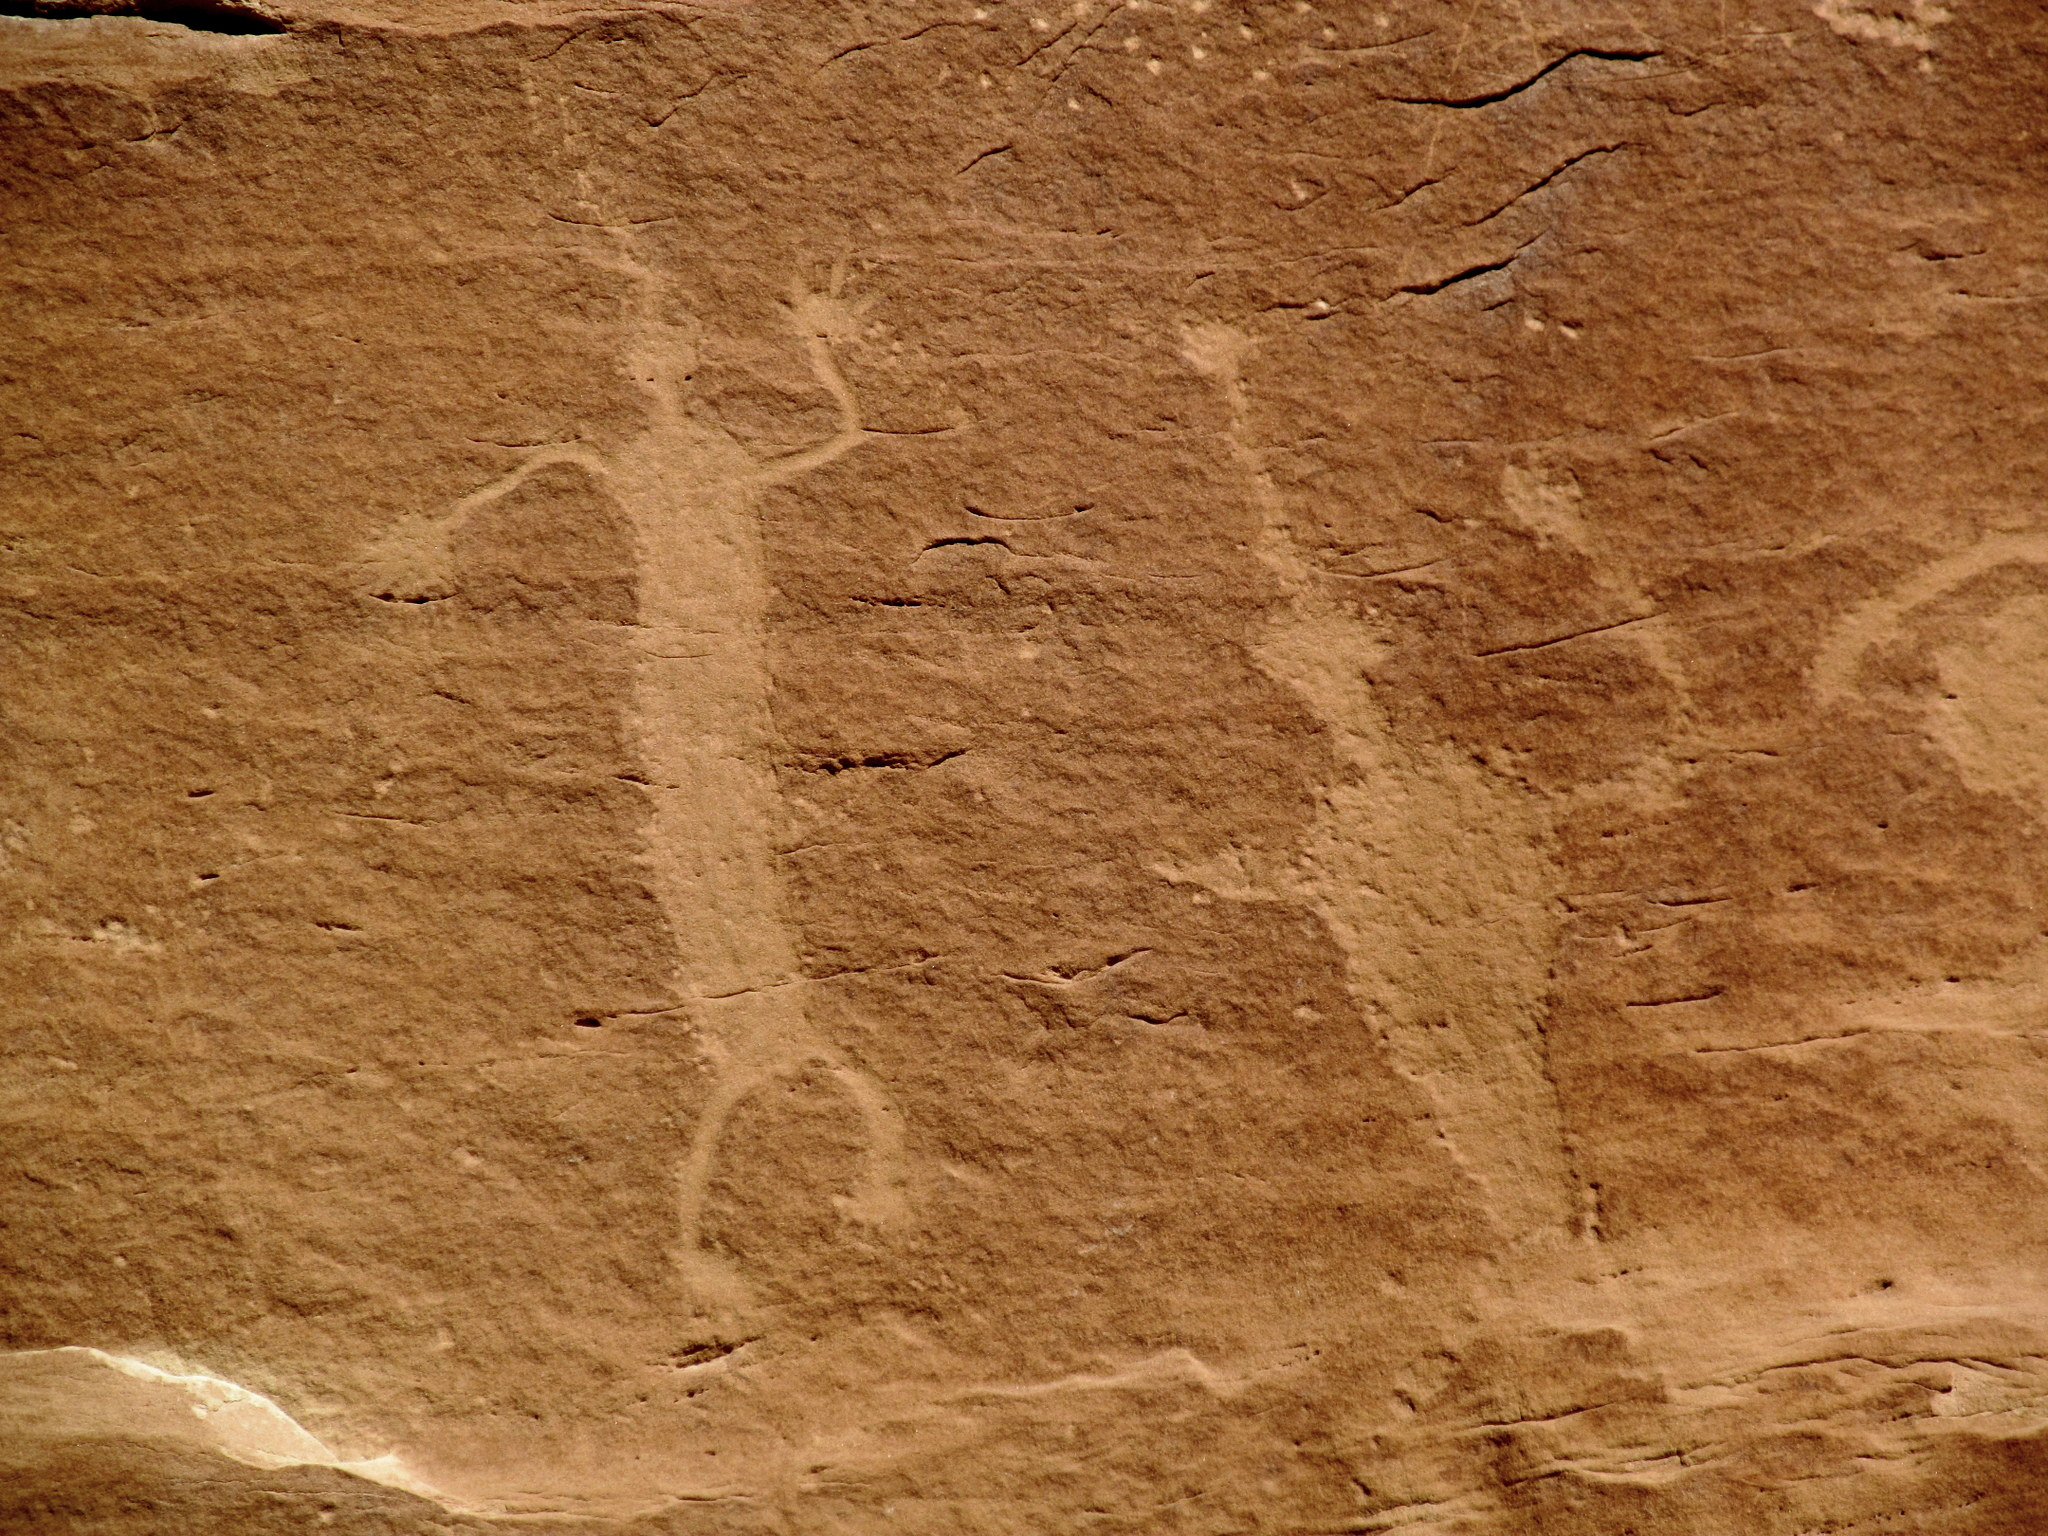 Photo: Pecked and abraded human figures